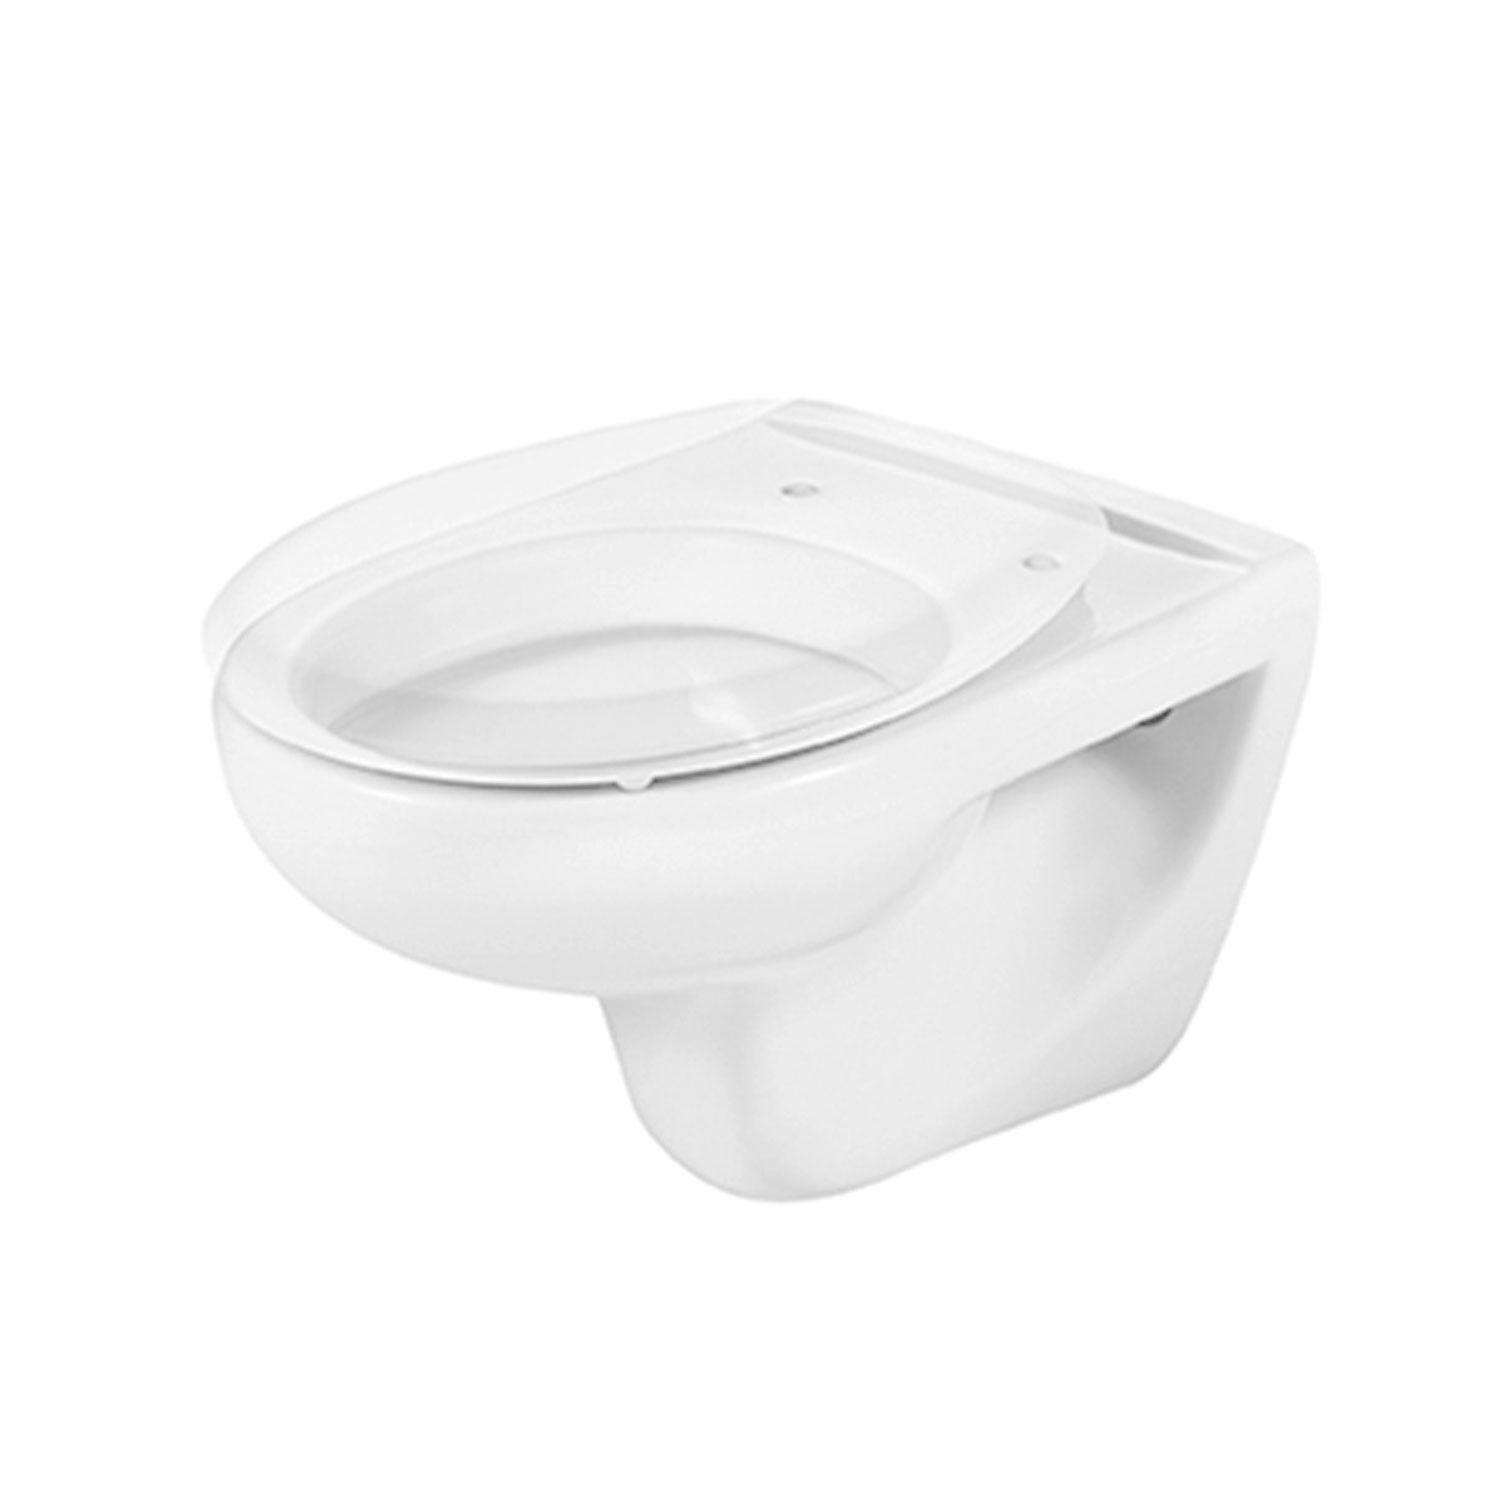 Roca Laura Wall Hung Toilet, 525mm Projection, Standard Seat-0